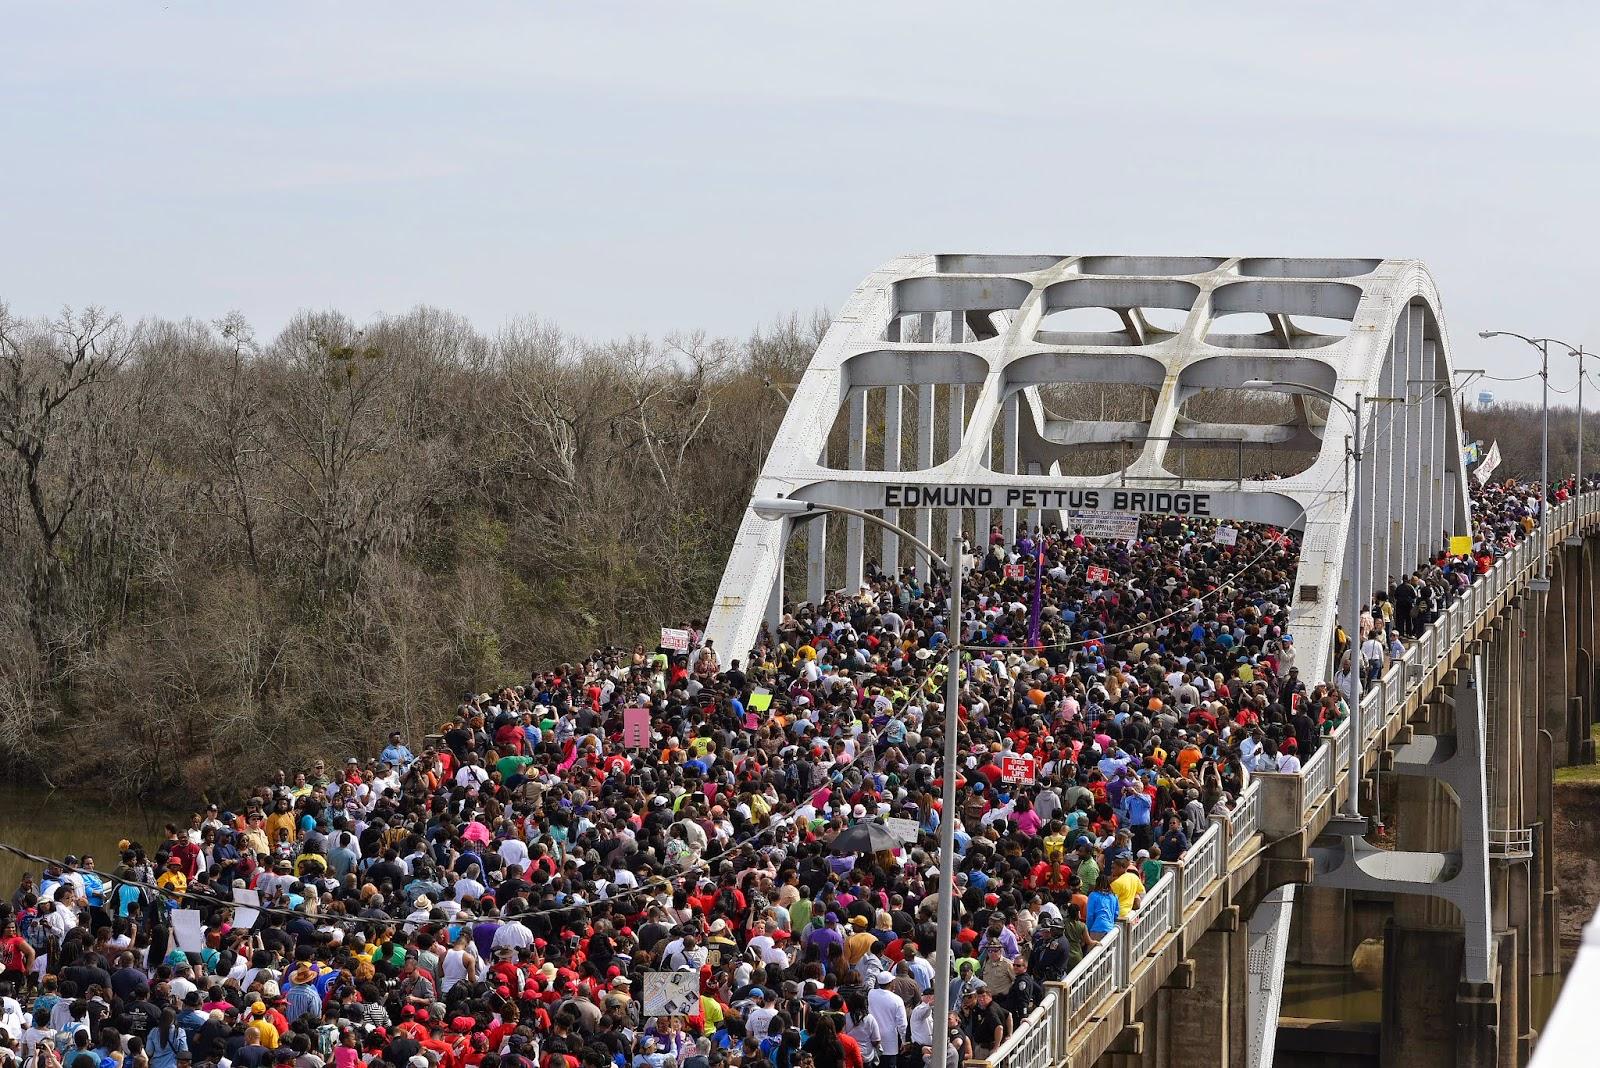 Marching across the bridge in 2015